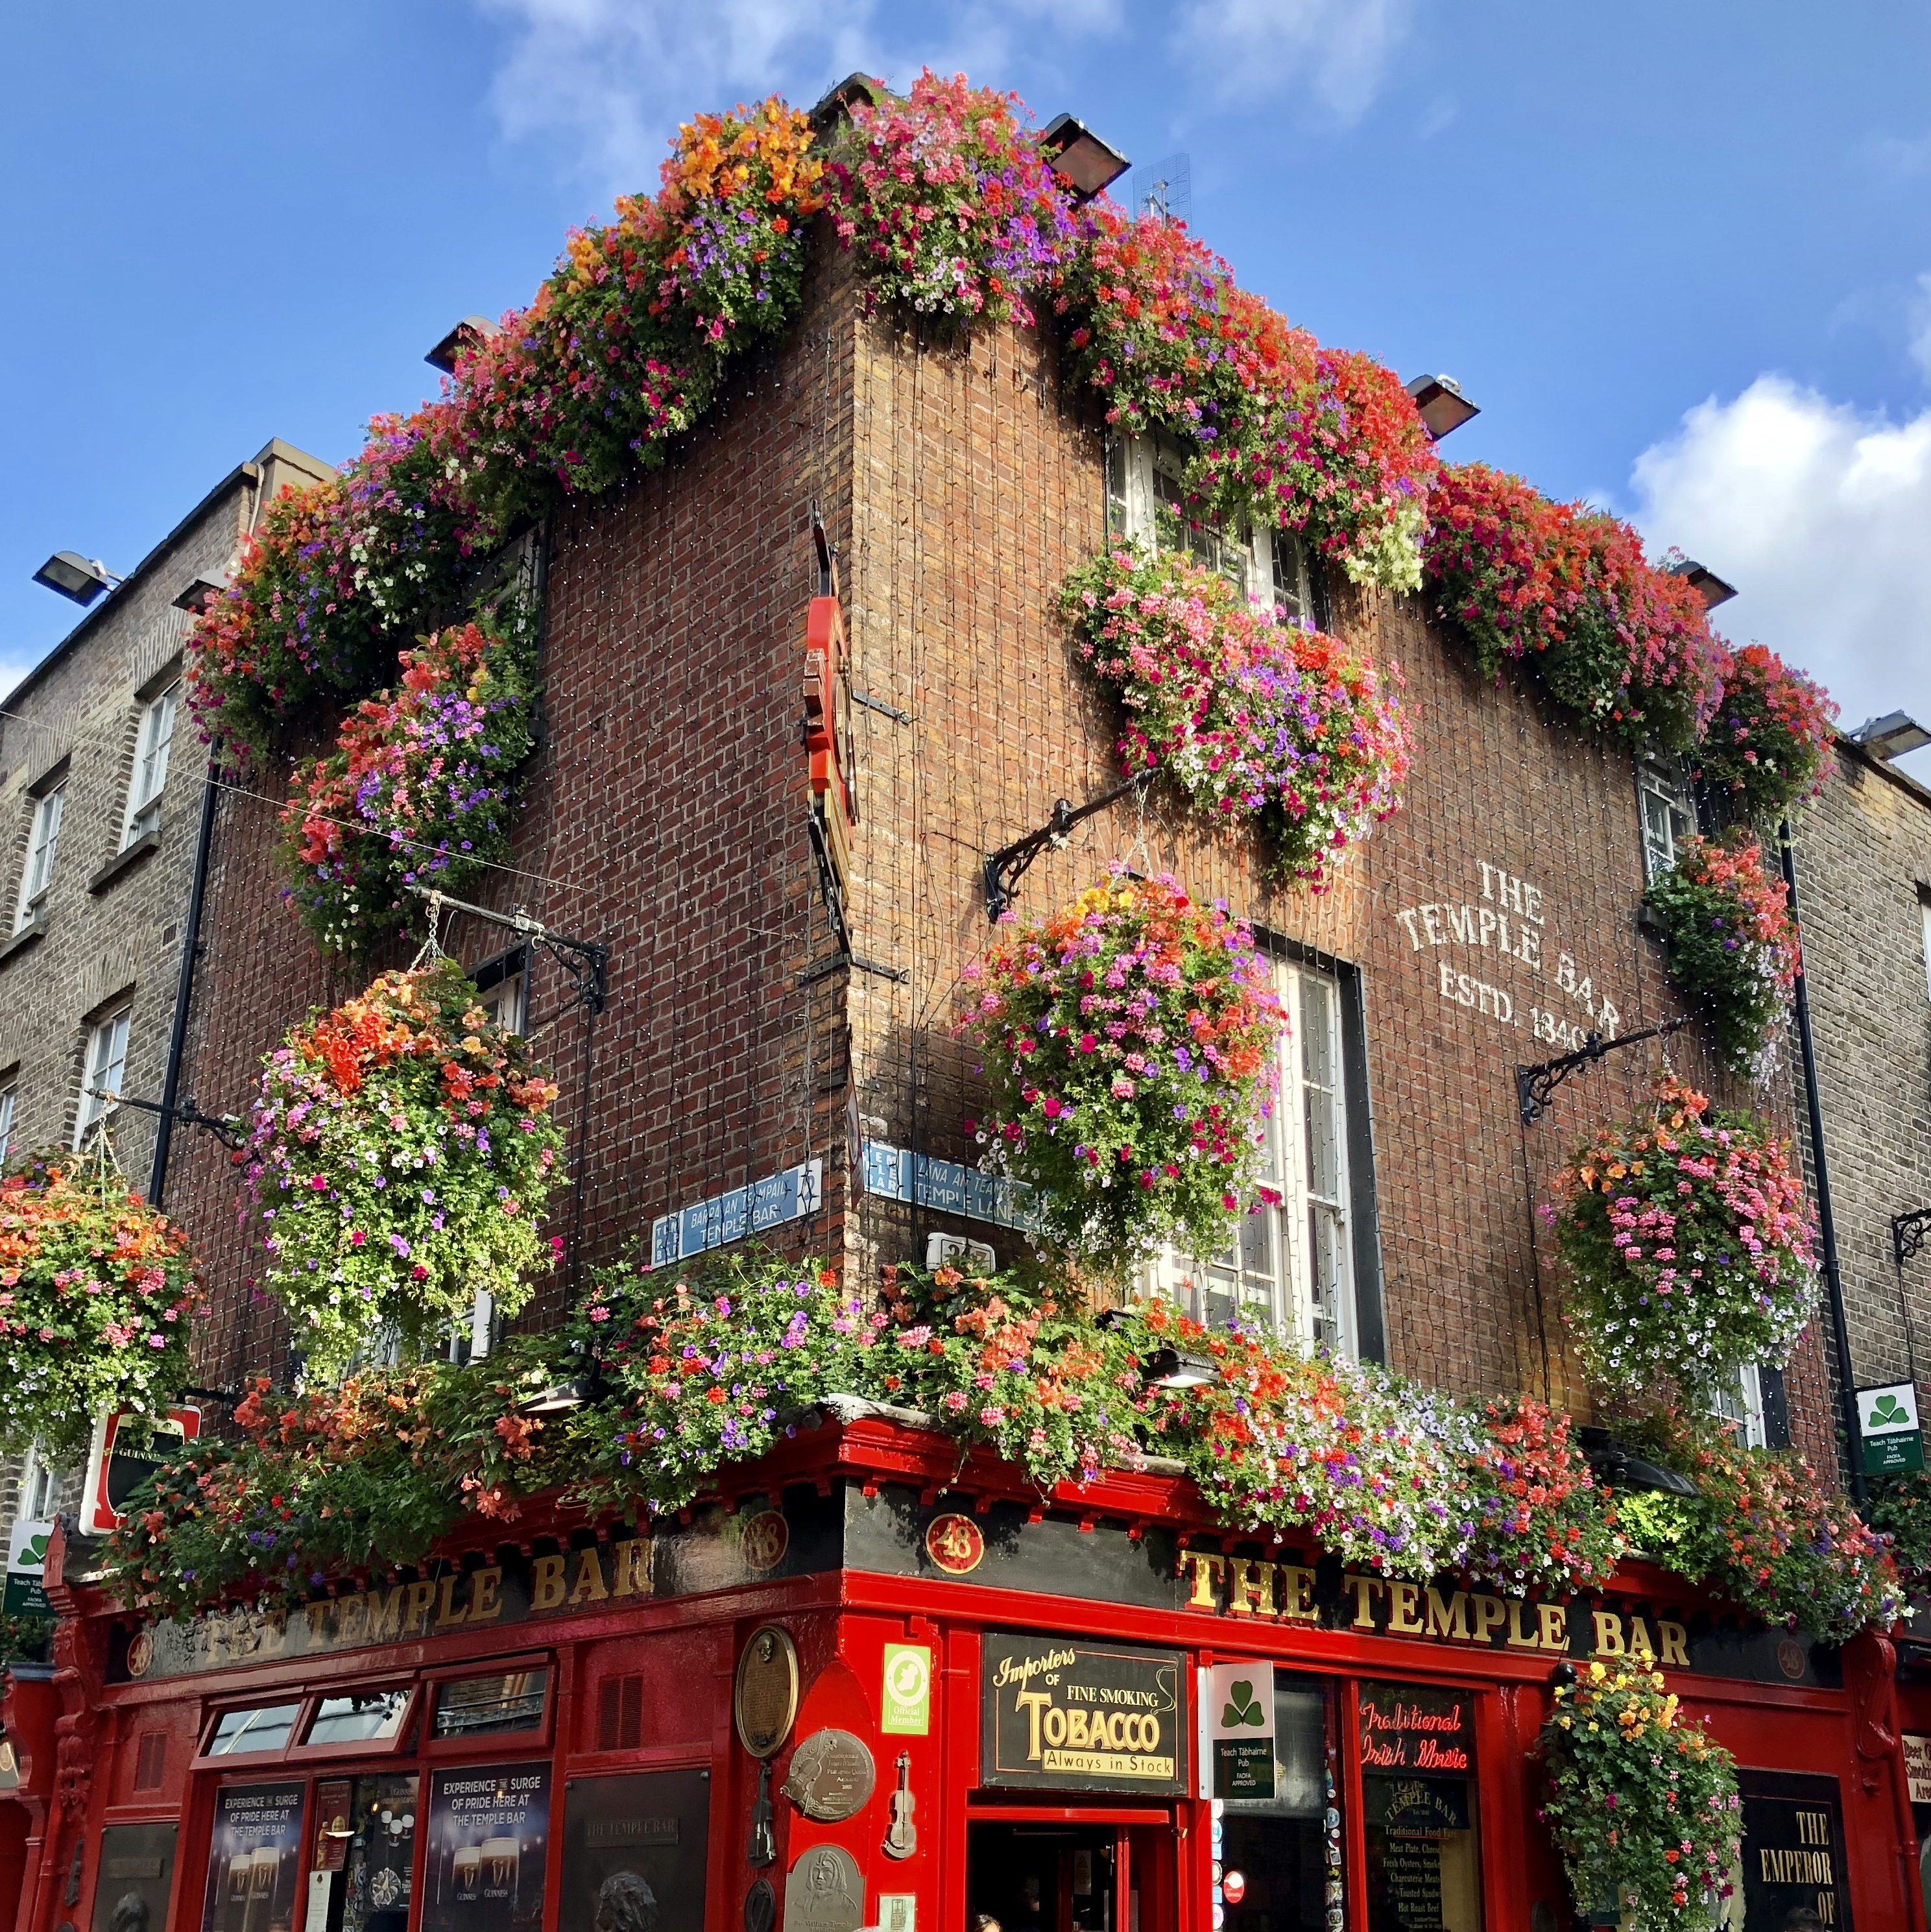 Travel  the world during 2020 by taking the greatest travel pub quiz of all time - The Temple Bar, Ireland - Giddy Guest